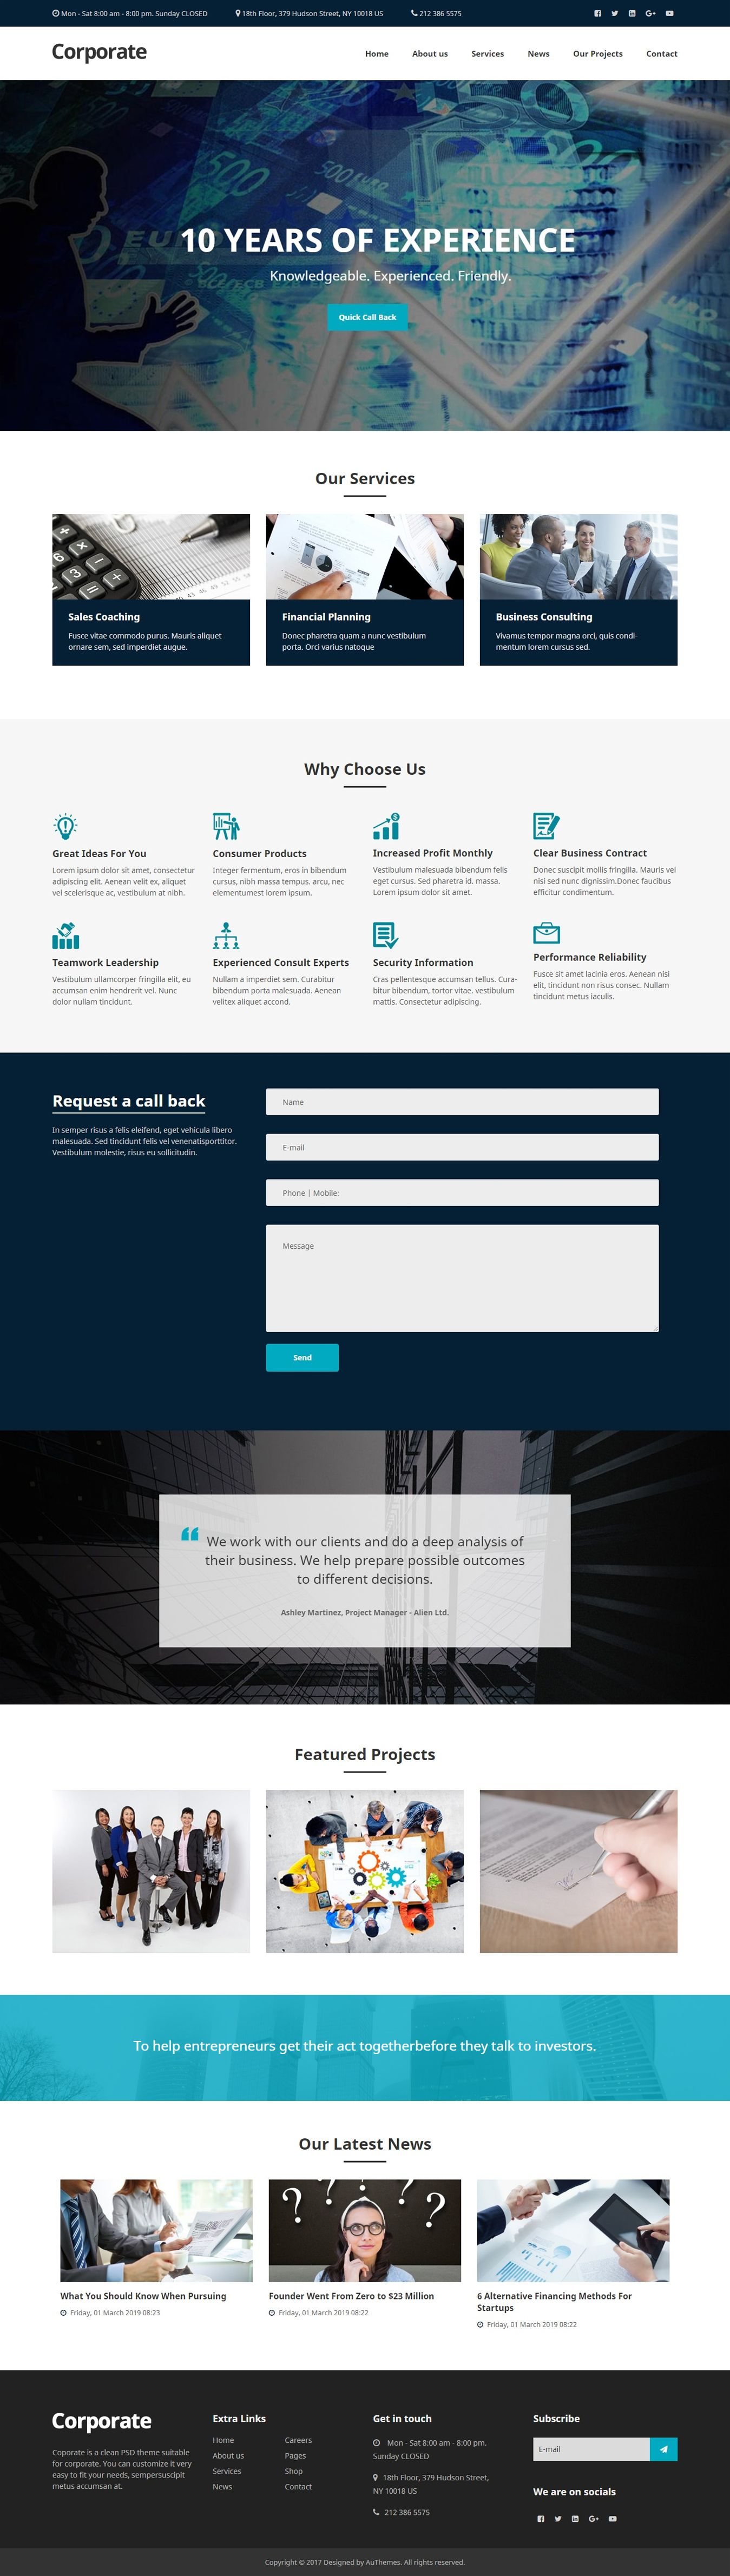 Badbadrobot Twitchie Website Template 1